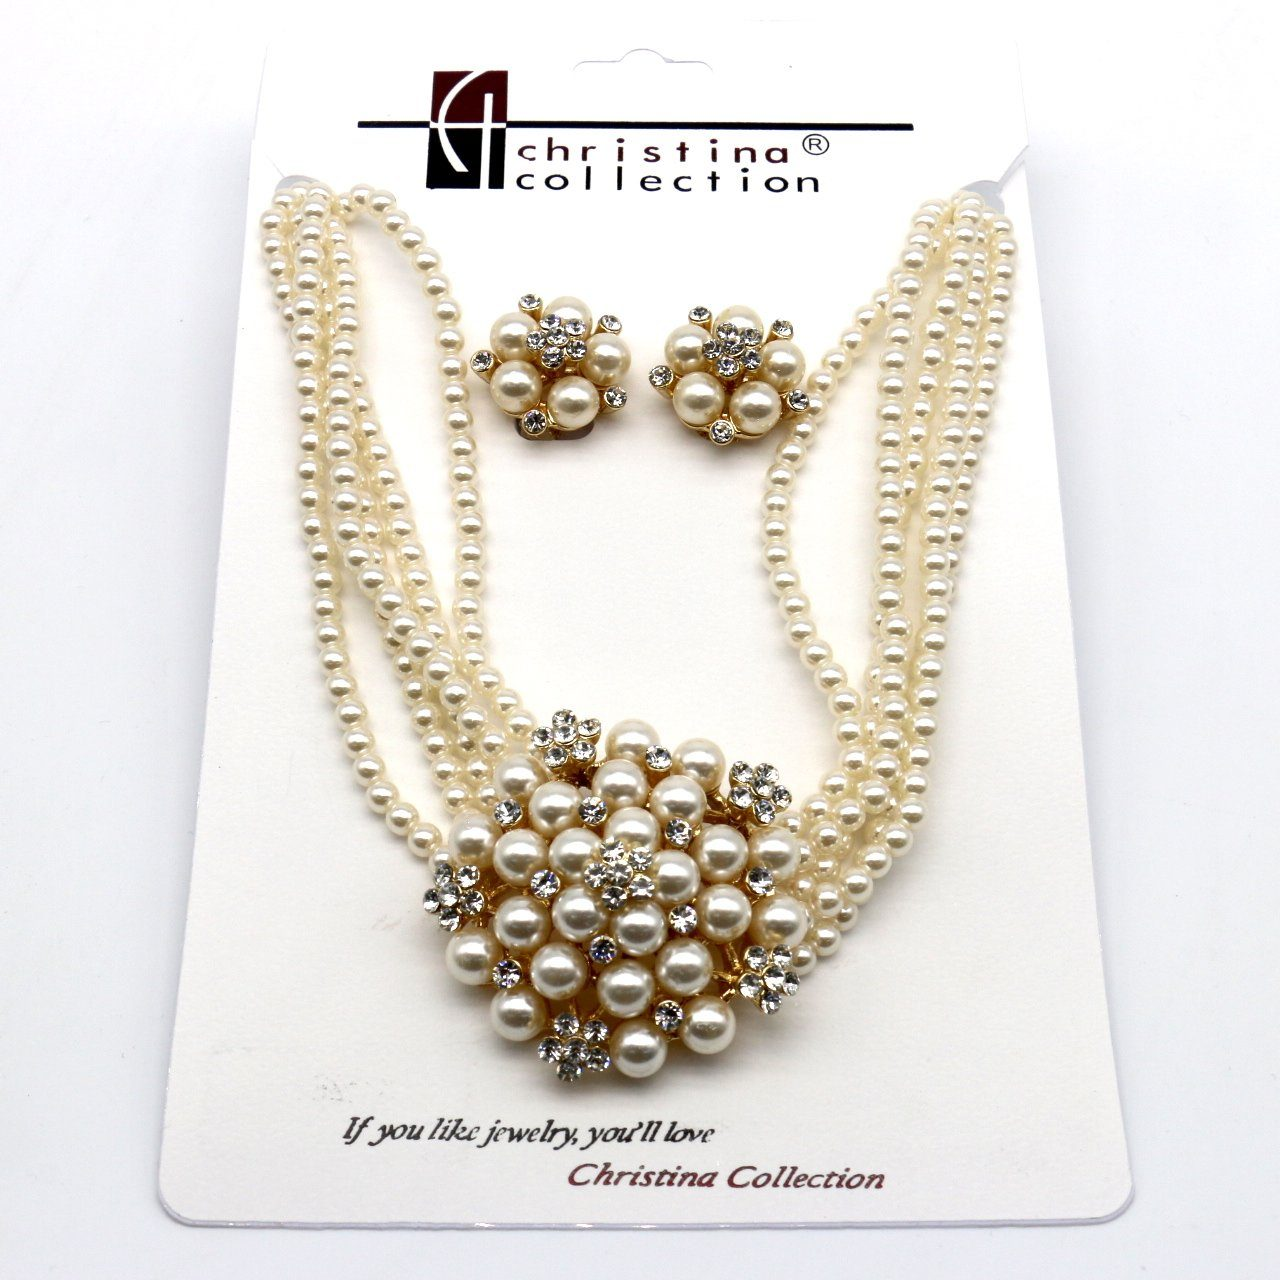 Your Online Dollar, Fashion, and Beauty Wholesale Partner